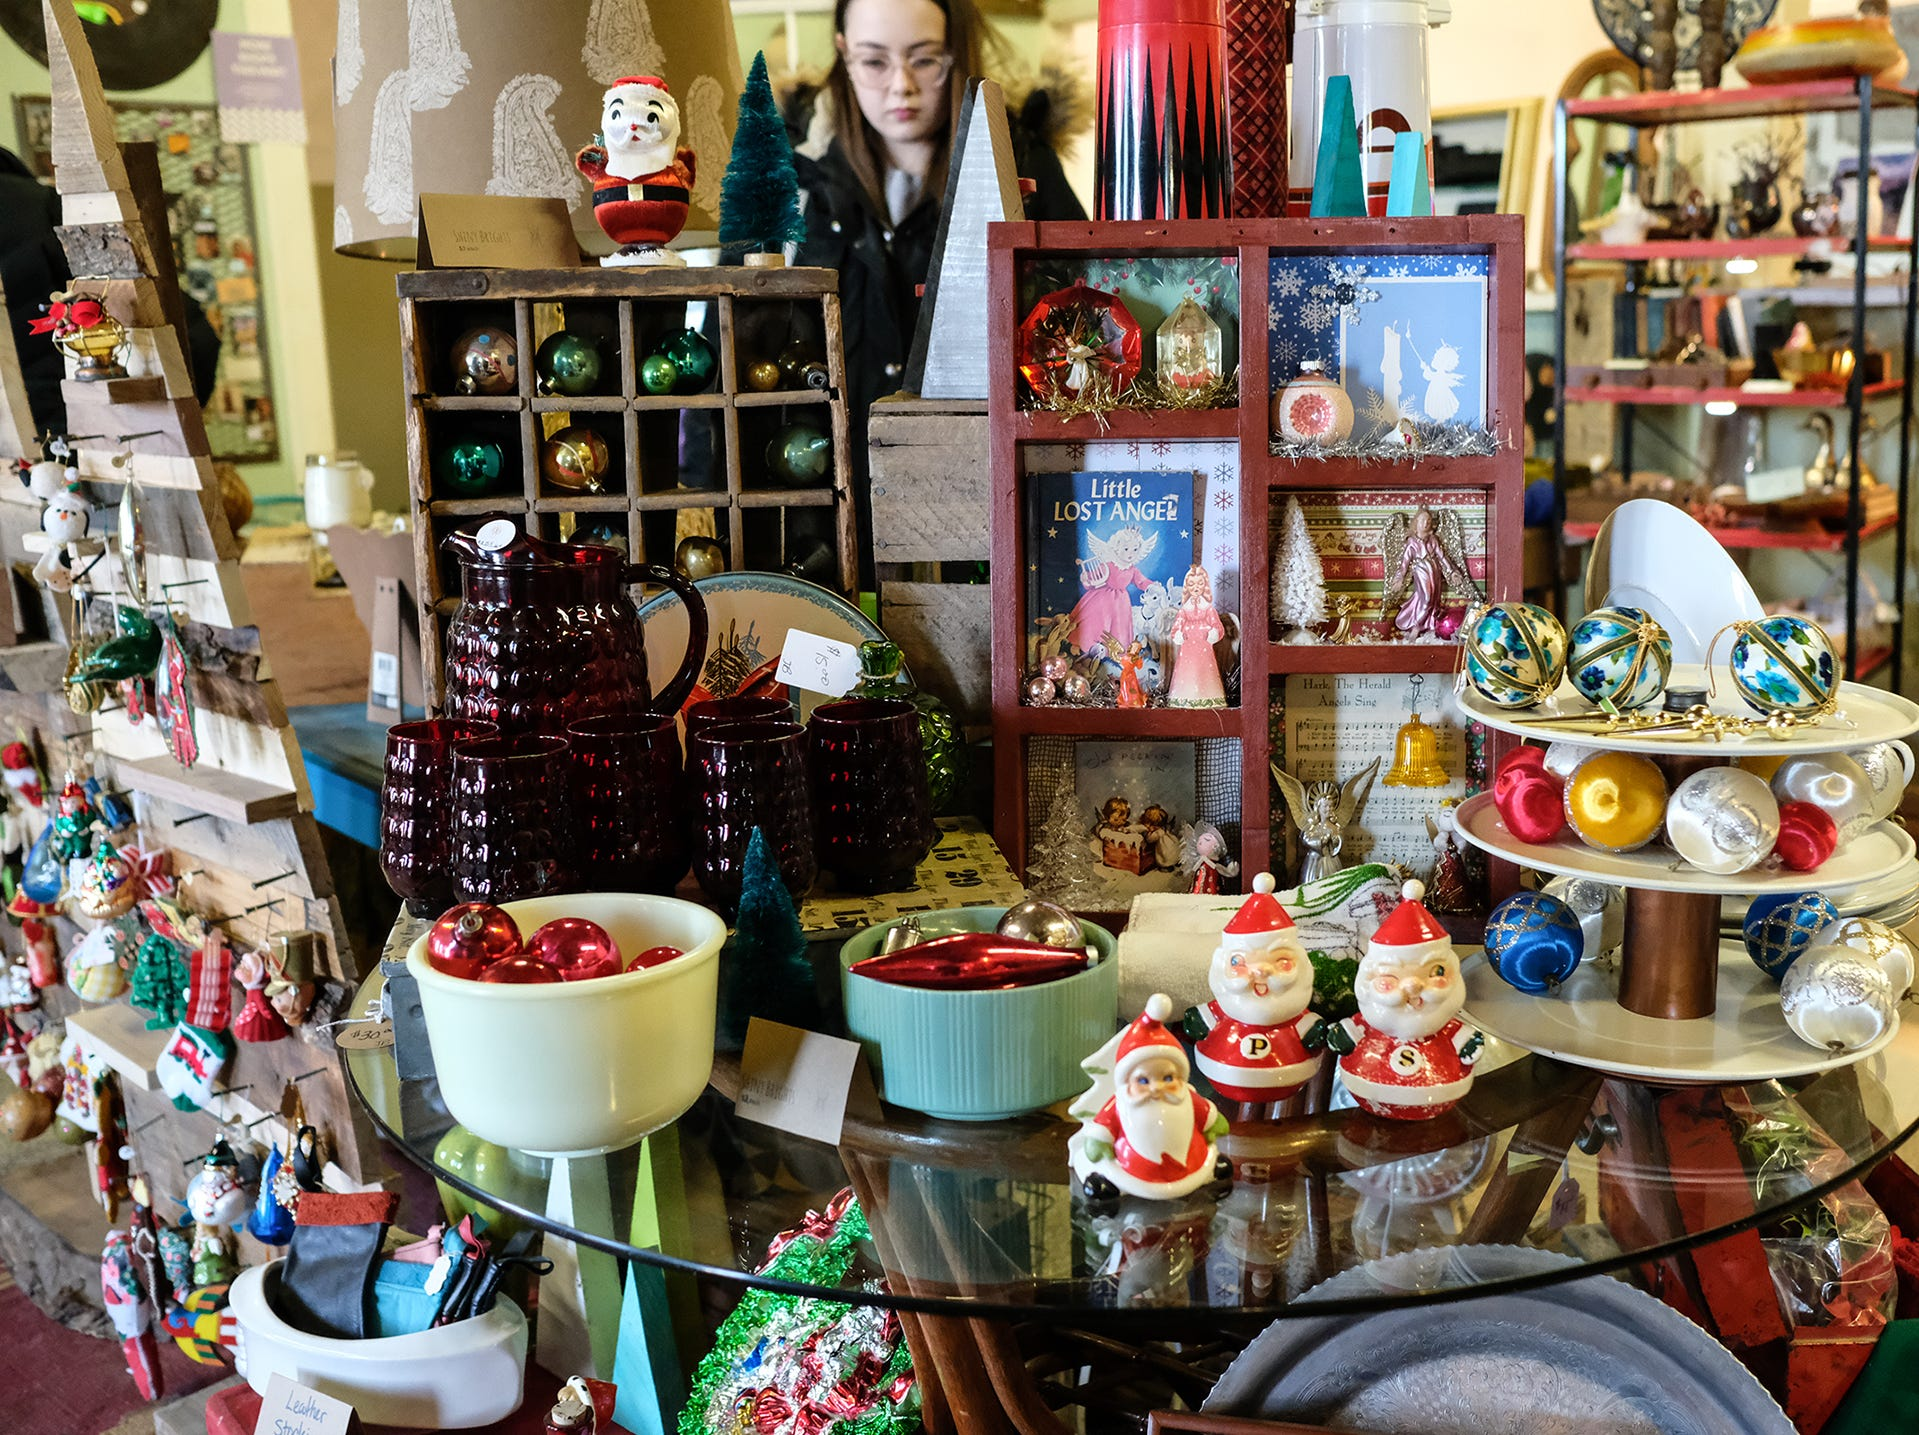 There are lots of unique Christmas ornaments on display at Vintage Junkies and other vendors at the Reo Town Marketplace Saturday, Dec. 8, 2018.